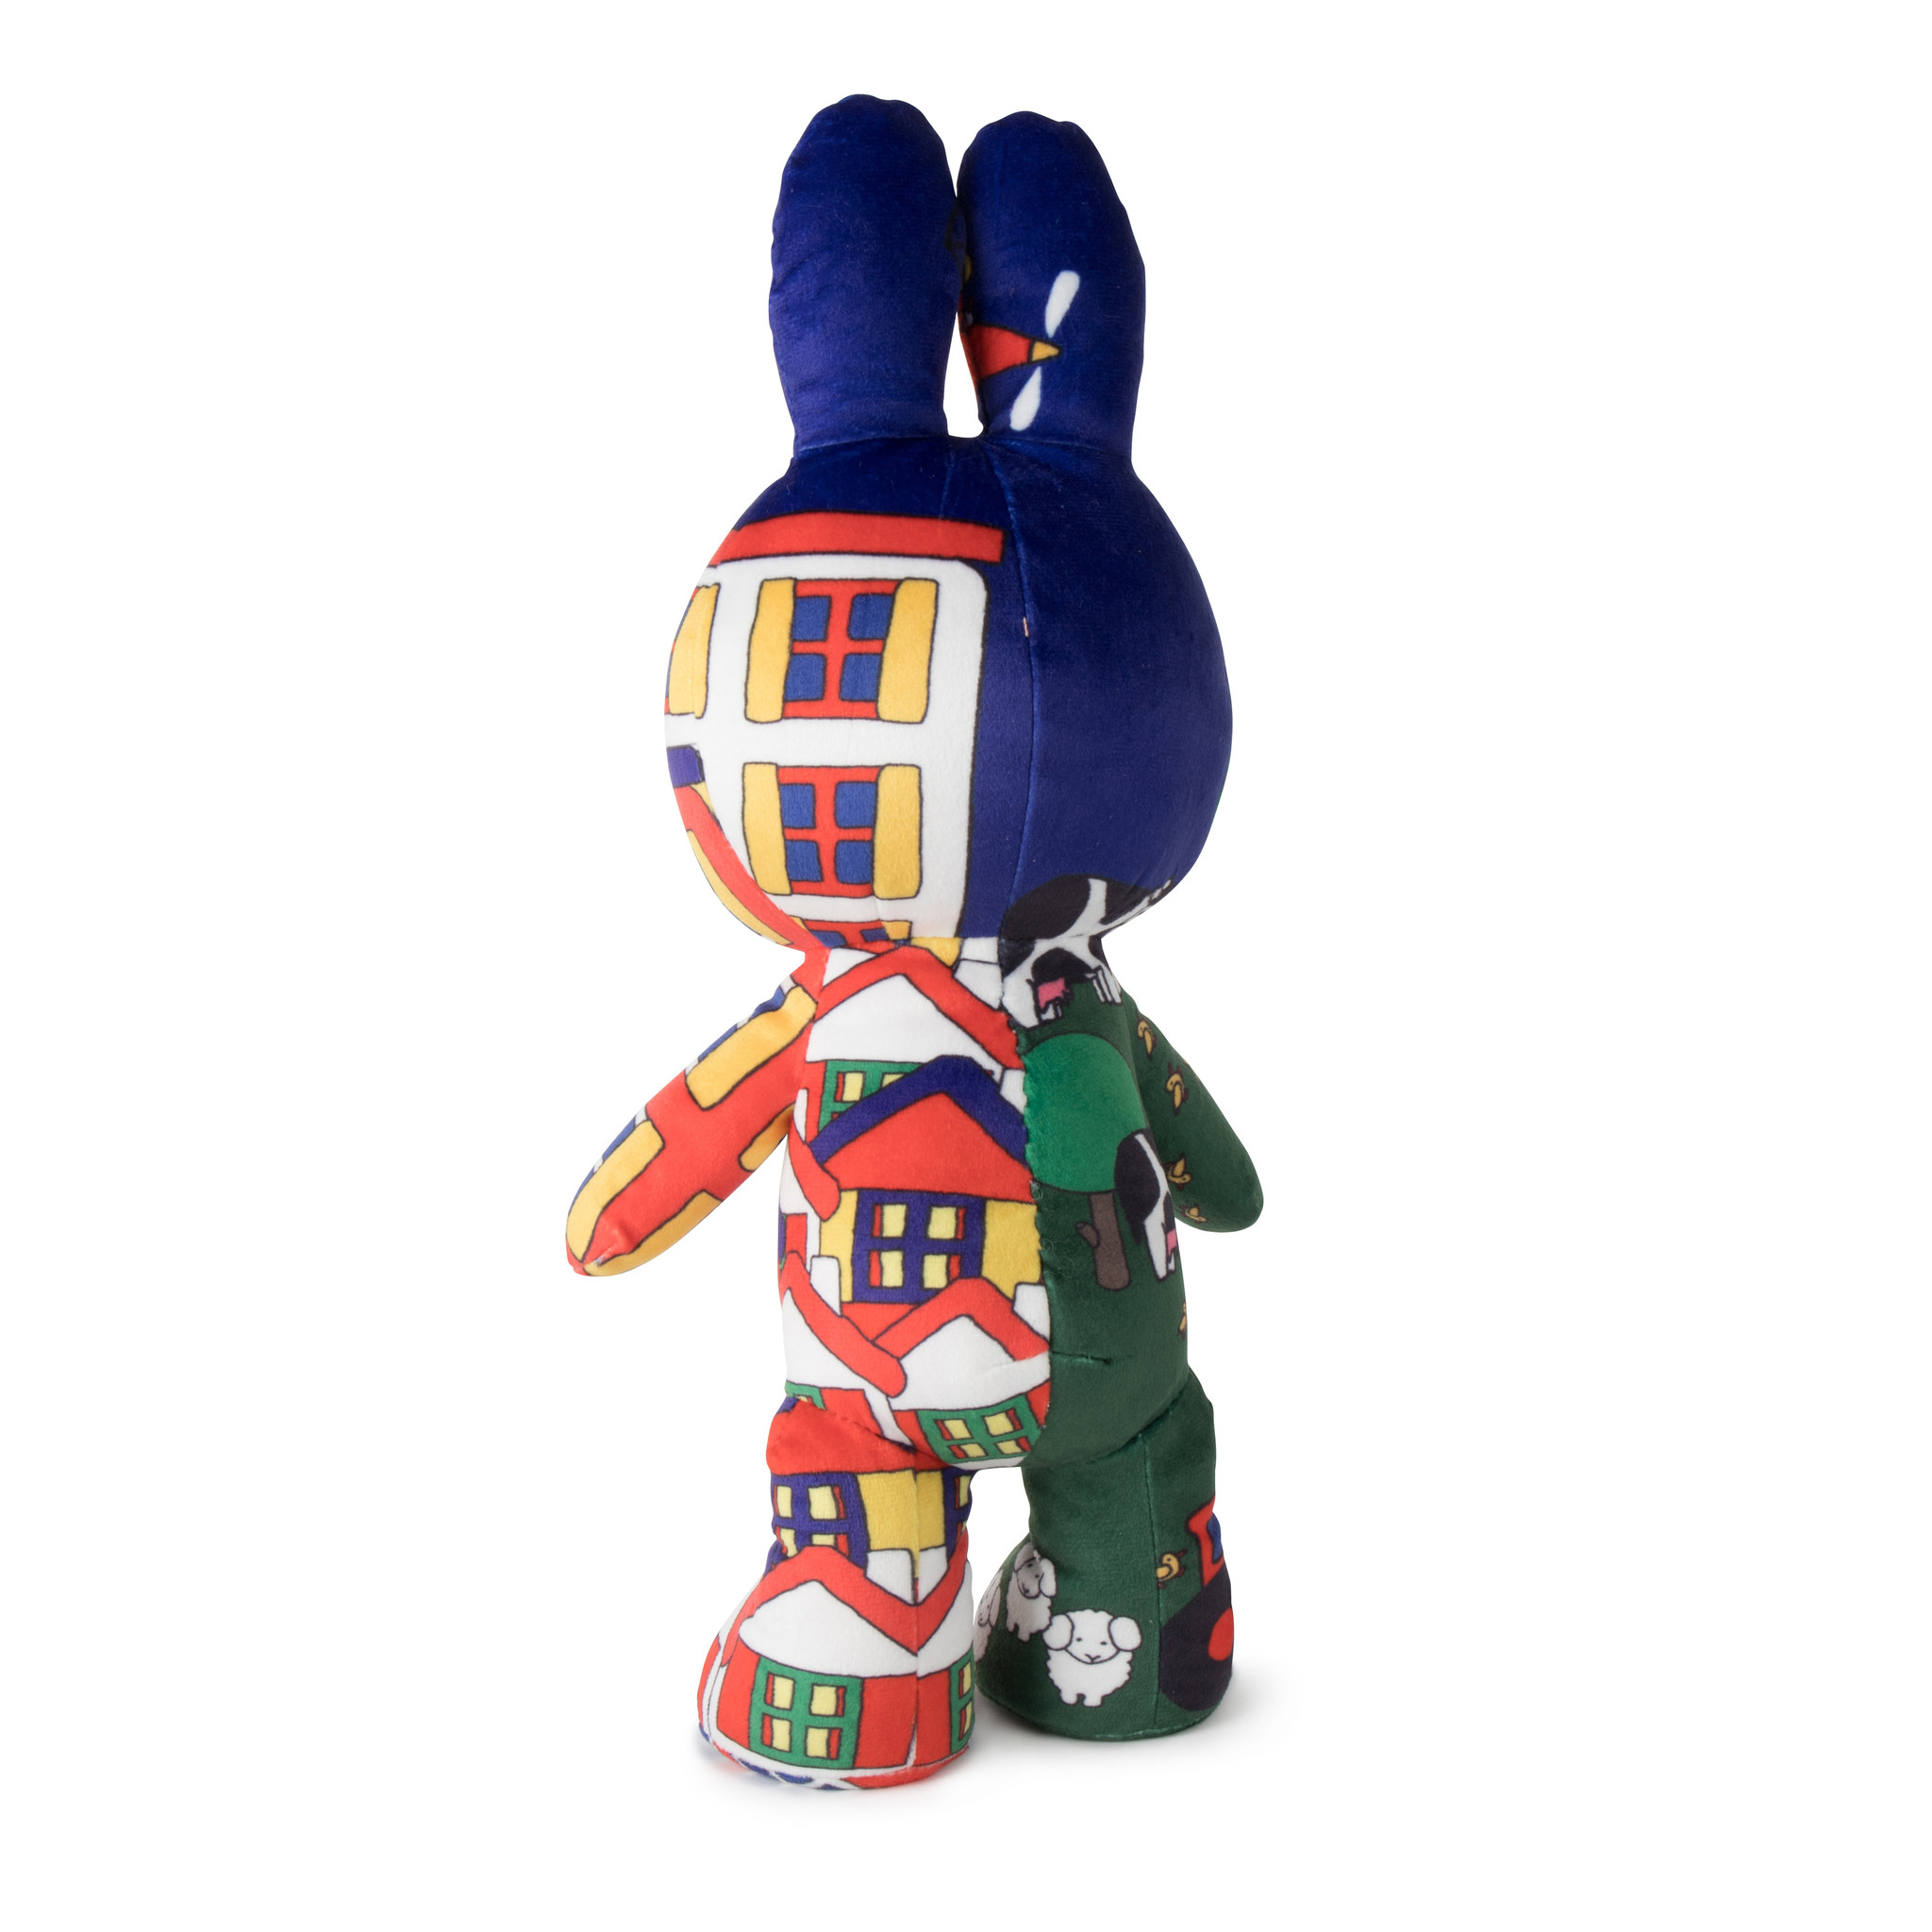 Limited edition Miffy cuddly toy 'Village vs City'